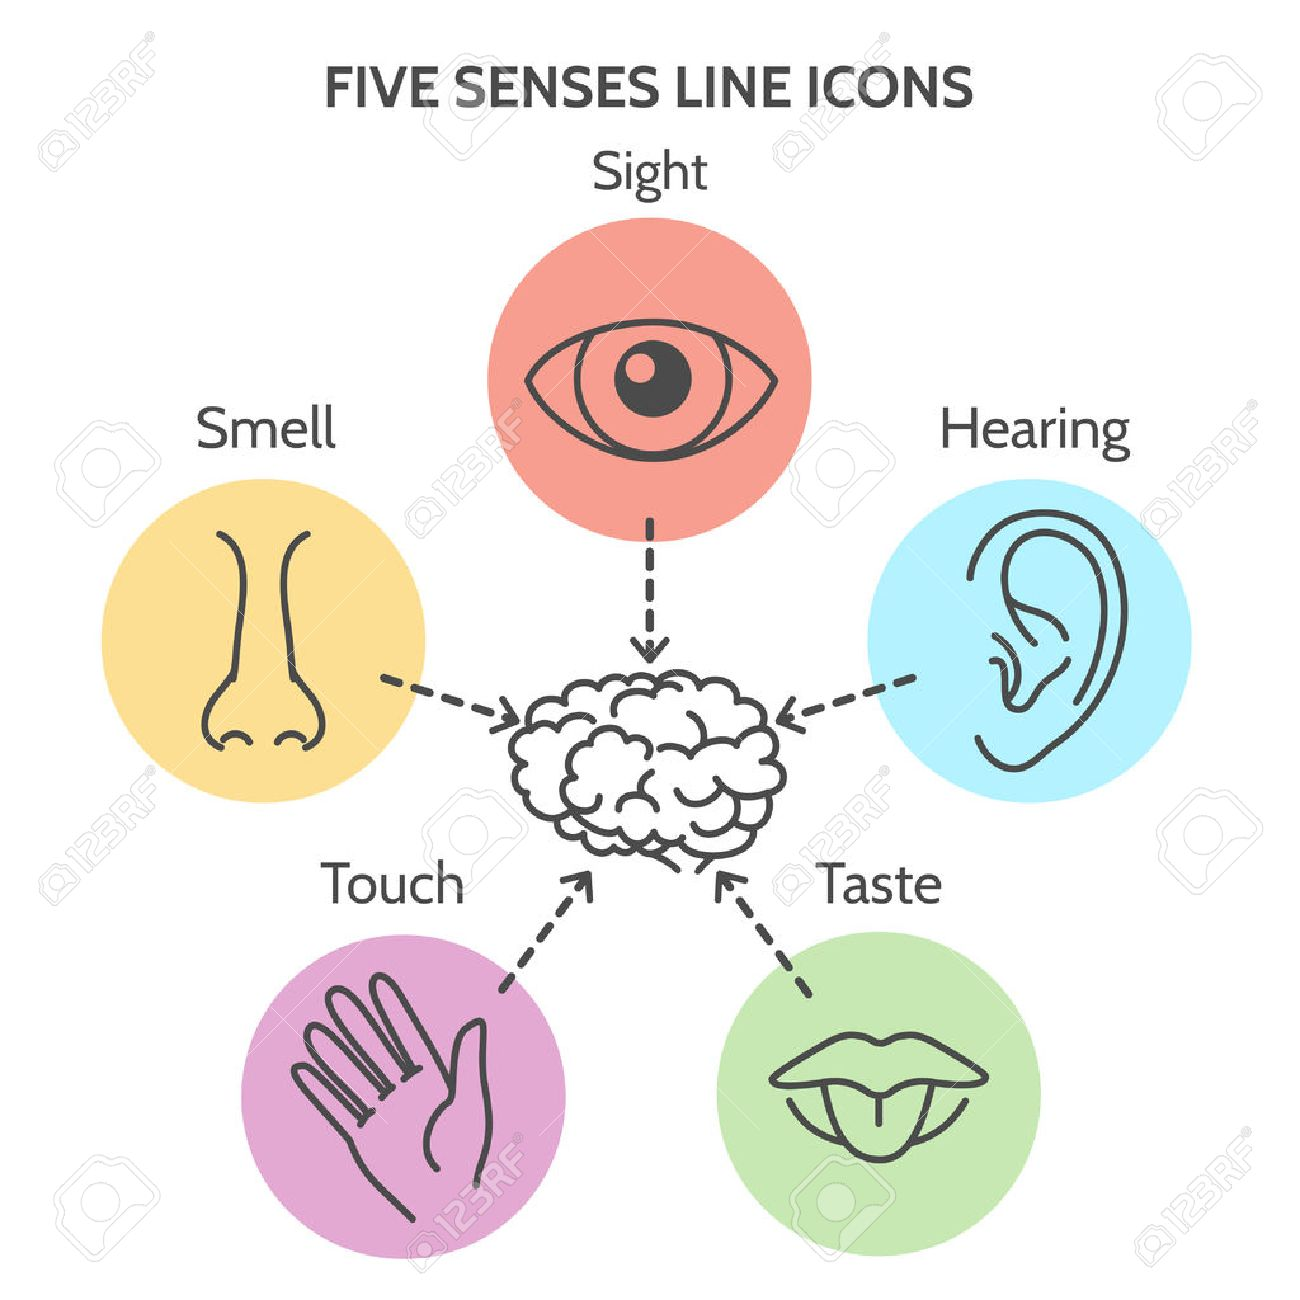 Five senses diagram electrical work wiring diagram five senses line icons human ear and eye symbols nose and mouth rh 123rf com diagram of five senses brain senses ccuart Image collections